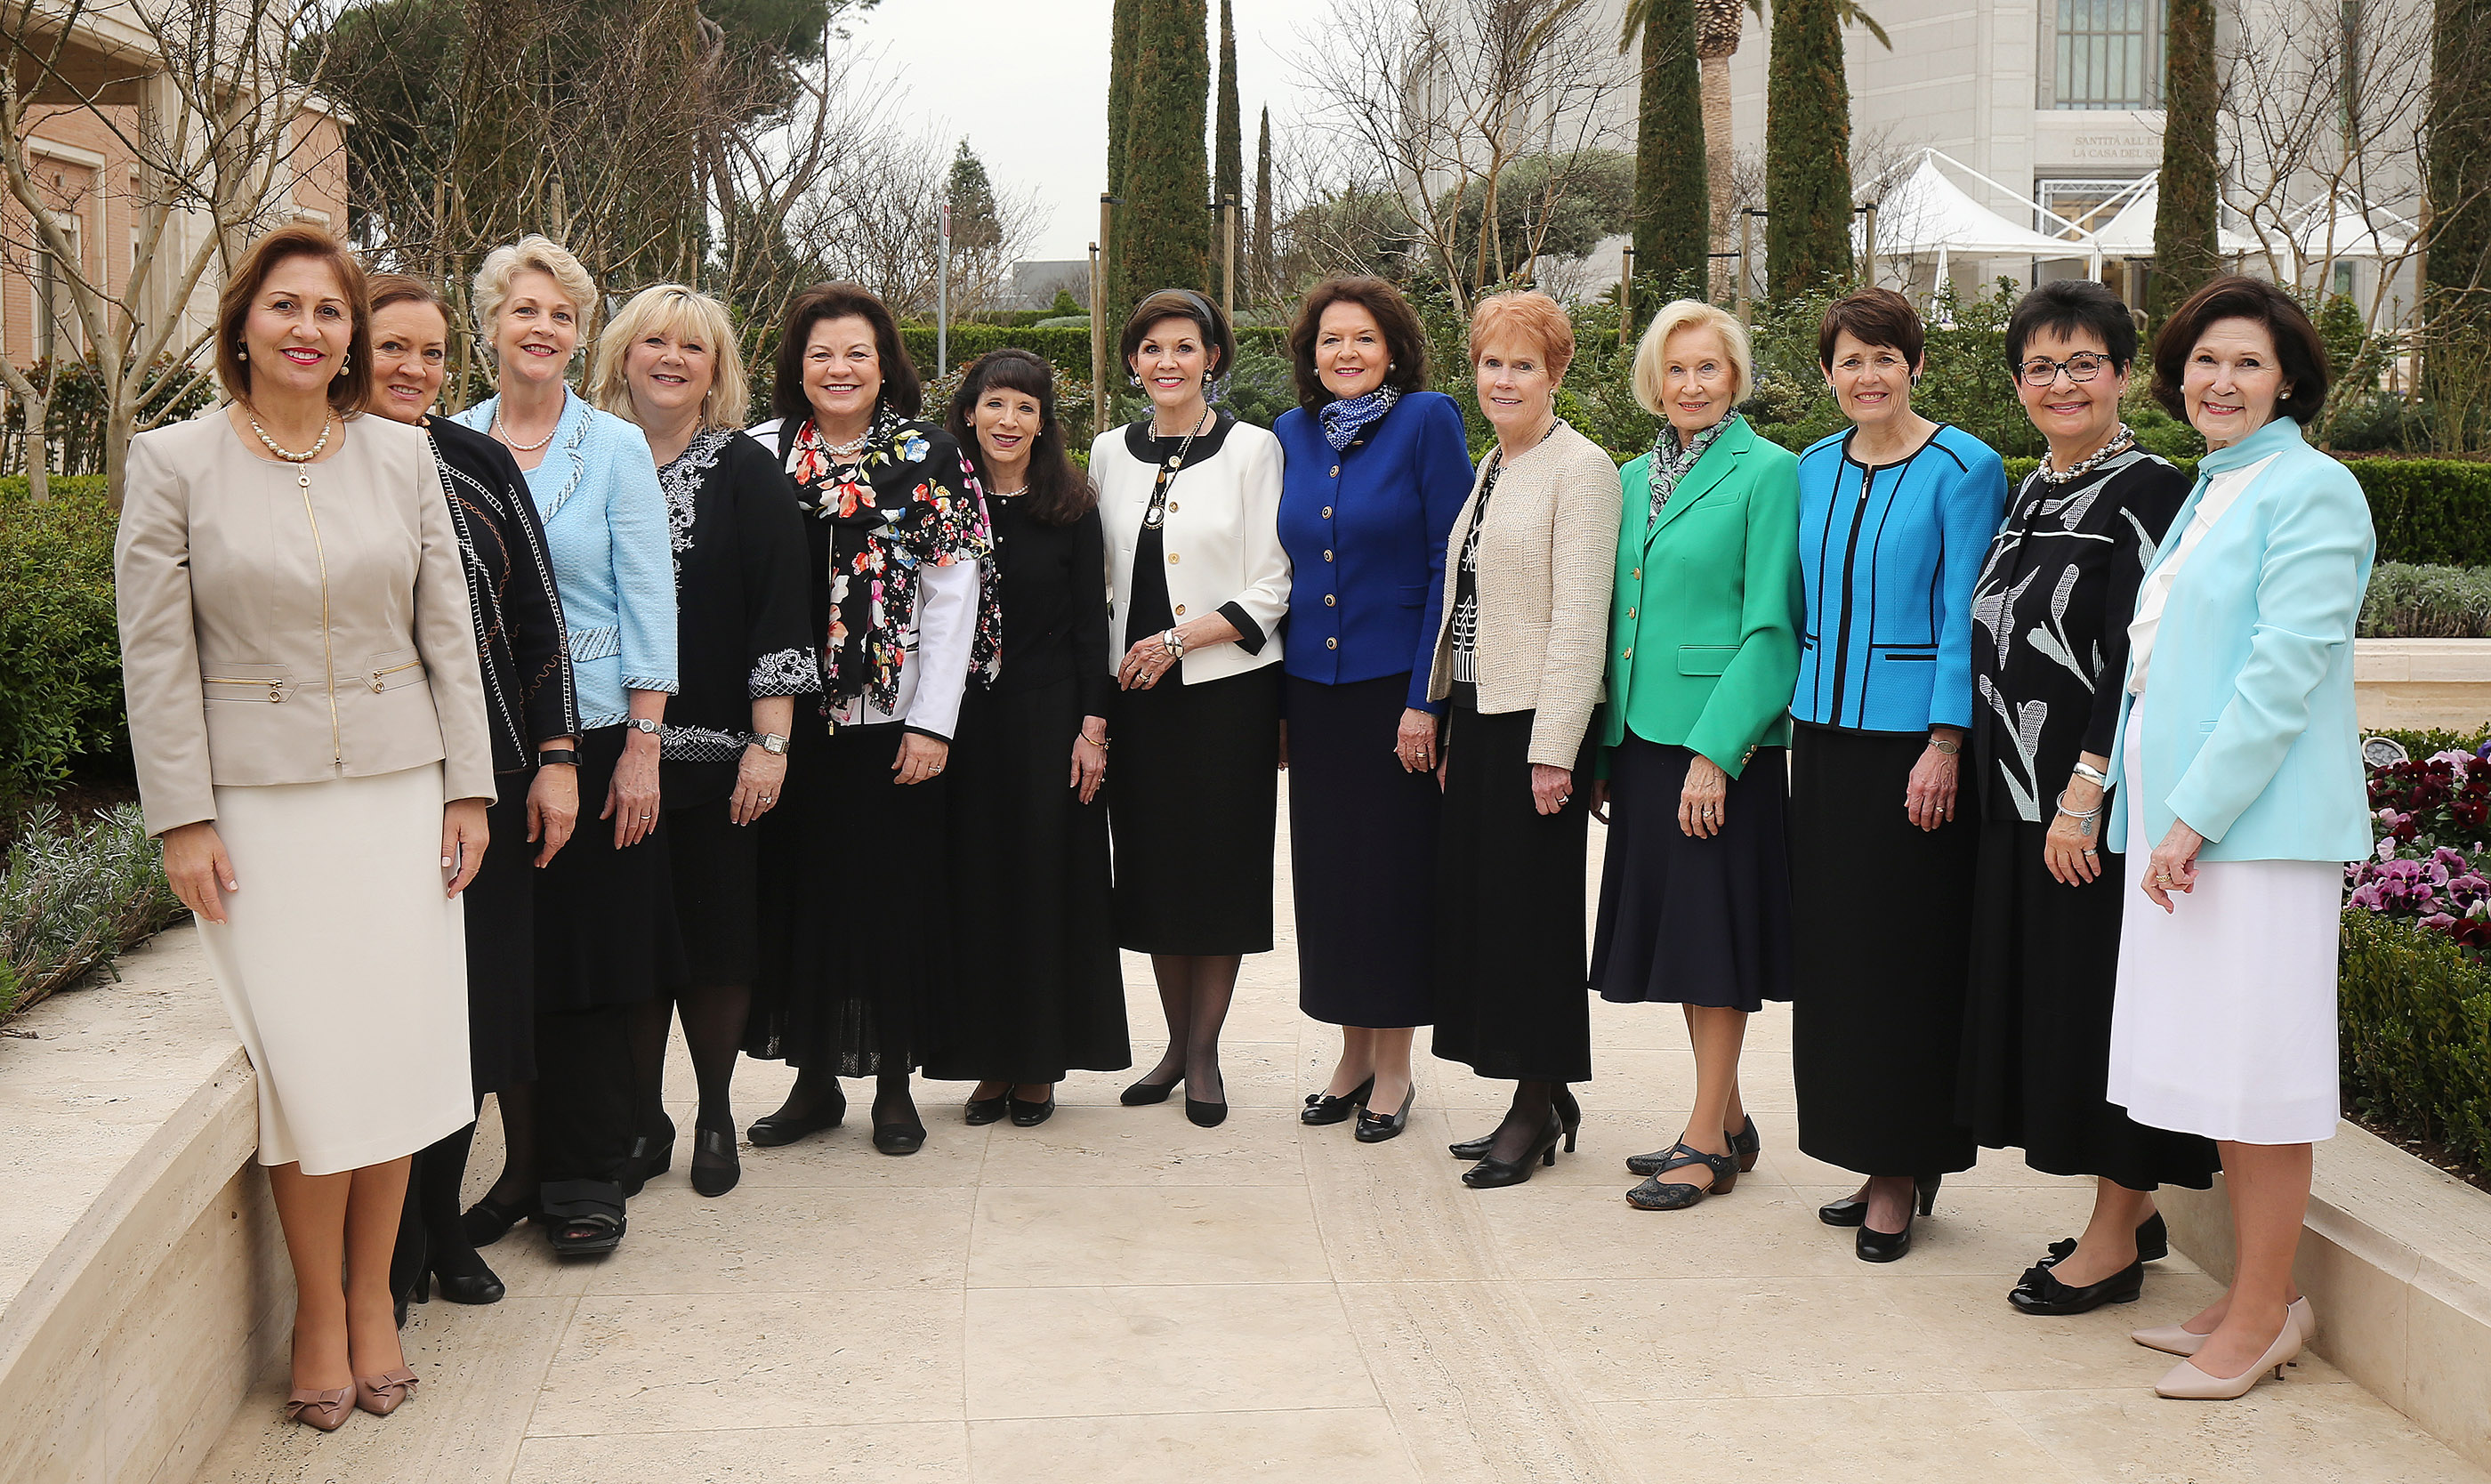 Wives of the members of the First Presidency and the Quorum of the Twelve Apostles of The Church of Jesus Christ of Latter-day Saints, pose for a photograph near the Rome Italy Temple Visitors' Center in Rome, Italy, on Monday, March 11, 2019.